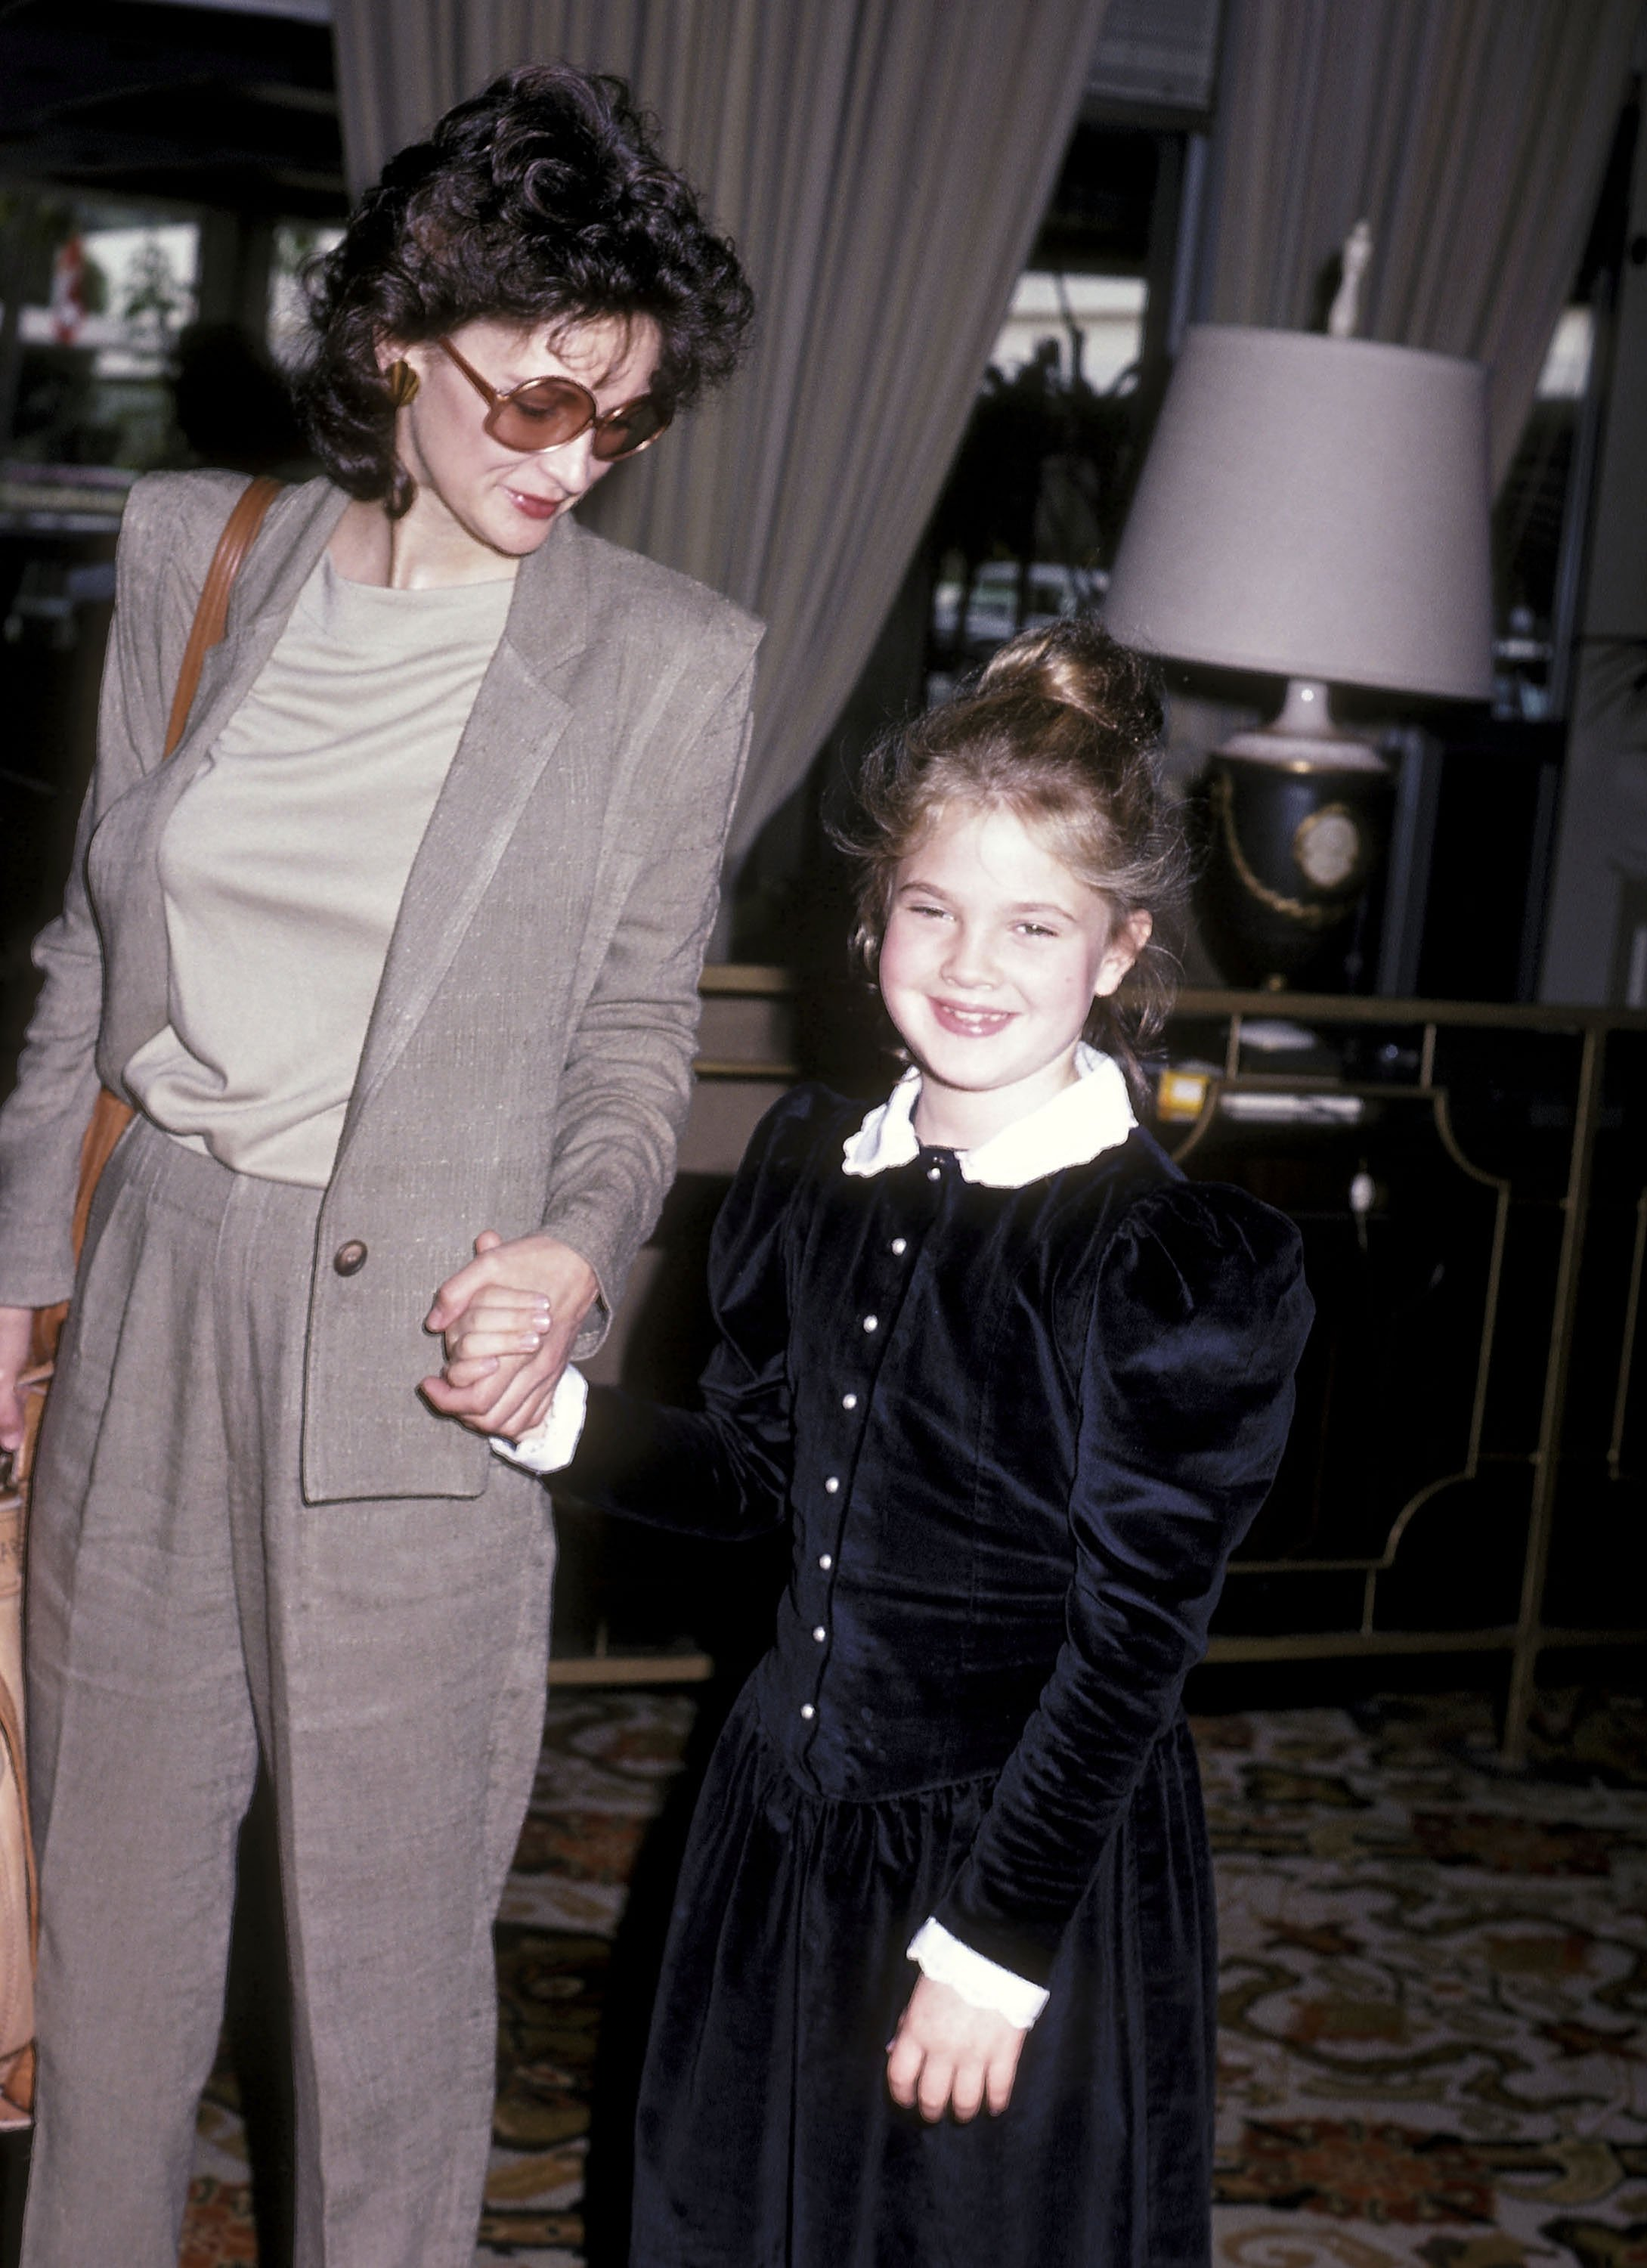 Drew Barrymore and mother Jaid Barrymore attend the Young Musicians Foundation's Second Annual Celebrity Mother/Daughter Fashion Show on March 10, 1983 | Photo: GettyImages